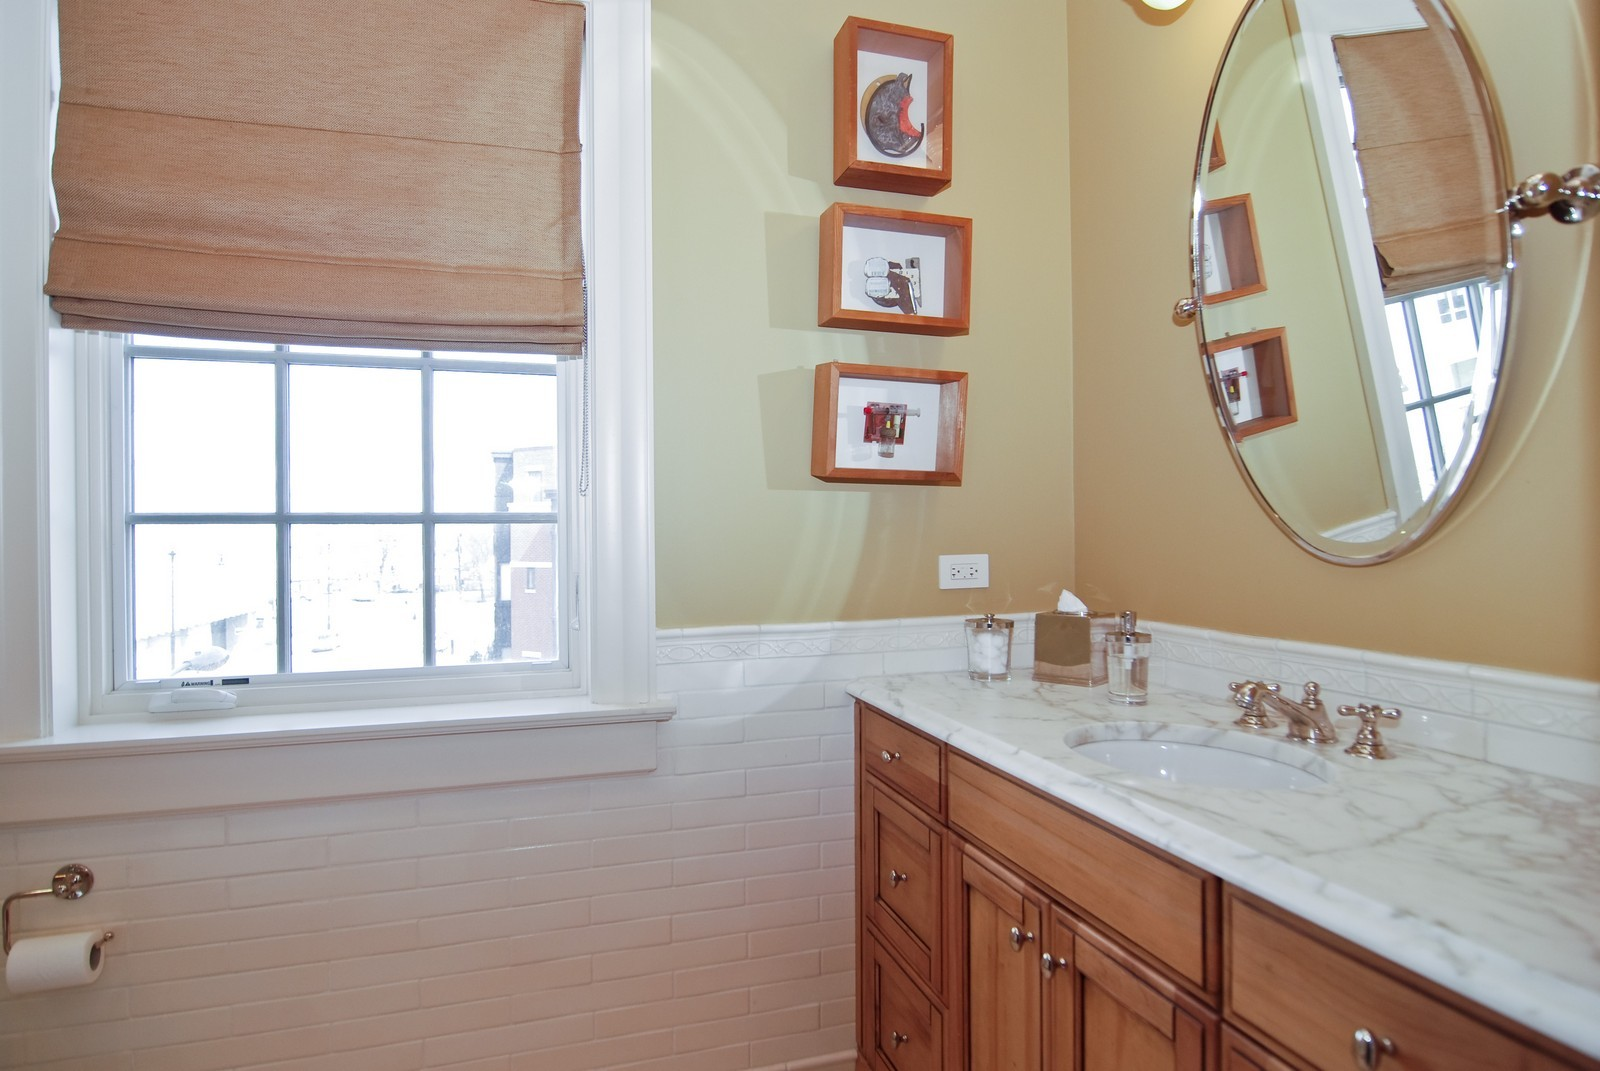 Real Estate Photography - 729 N Kingsbury, Chicago, IL, 60654 - Location 6